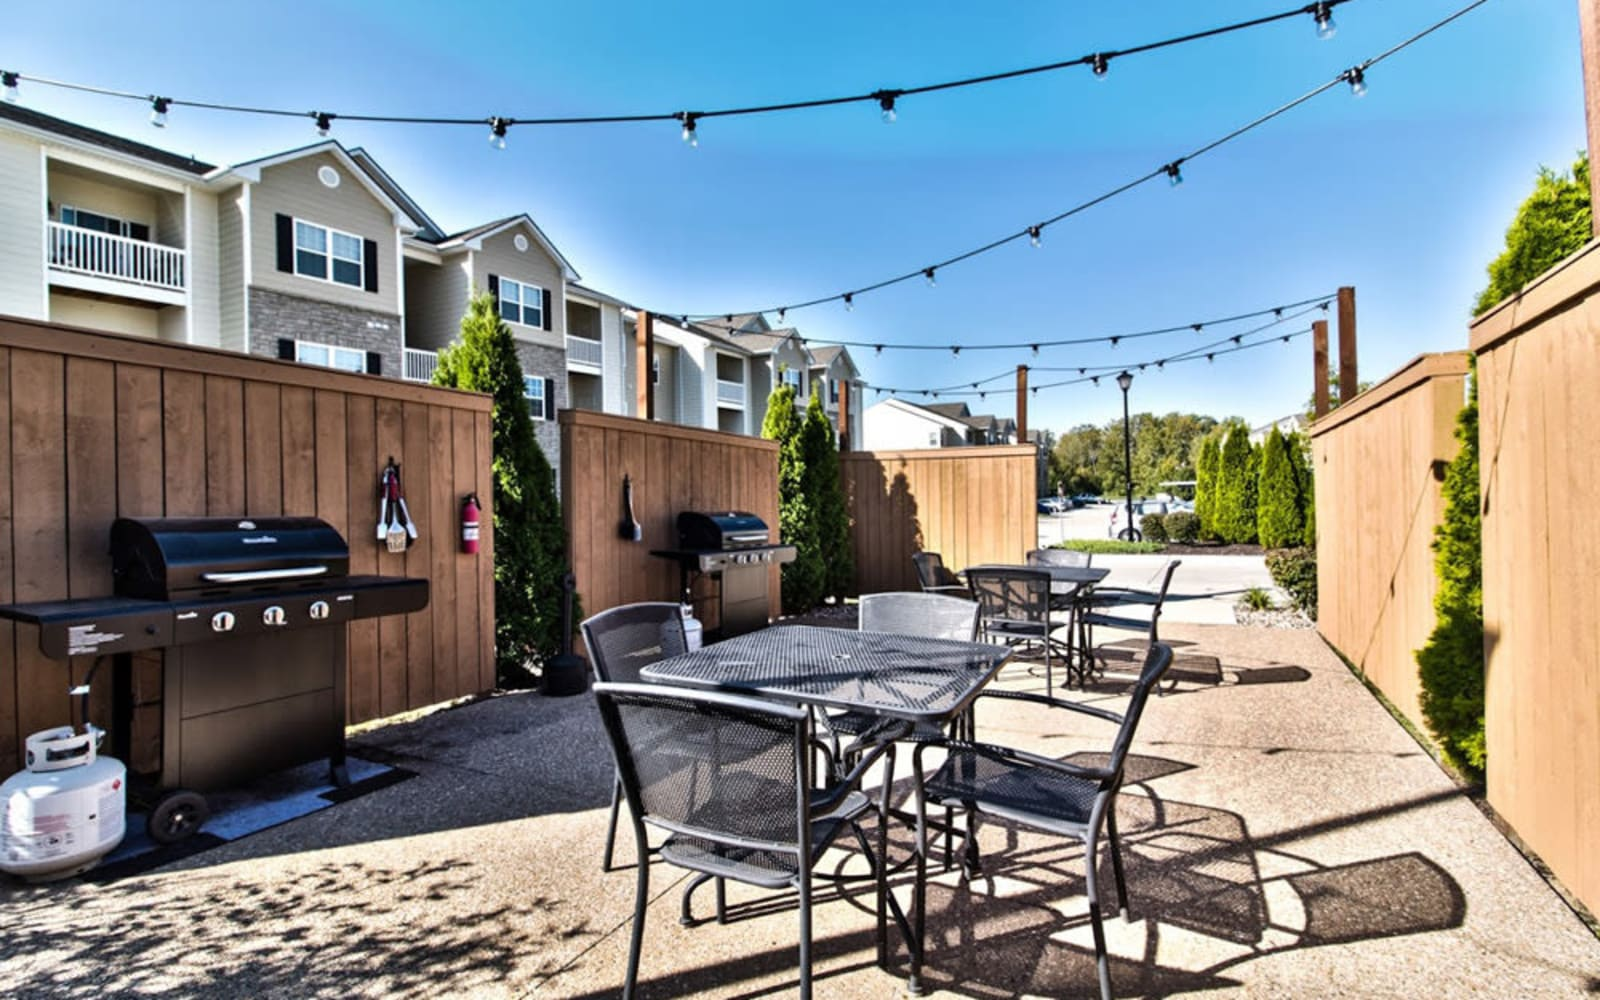 Outdoor dining area with grills at Aventura at Mid Rivers in Saint Charles, Missouri.